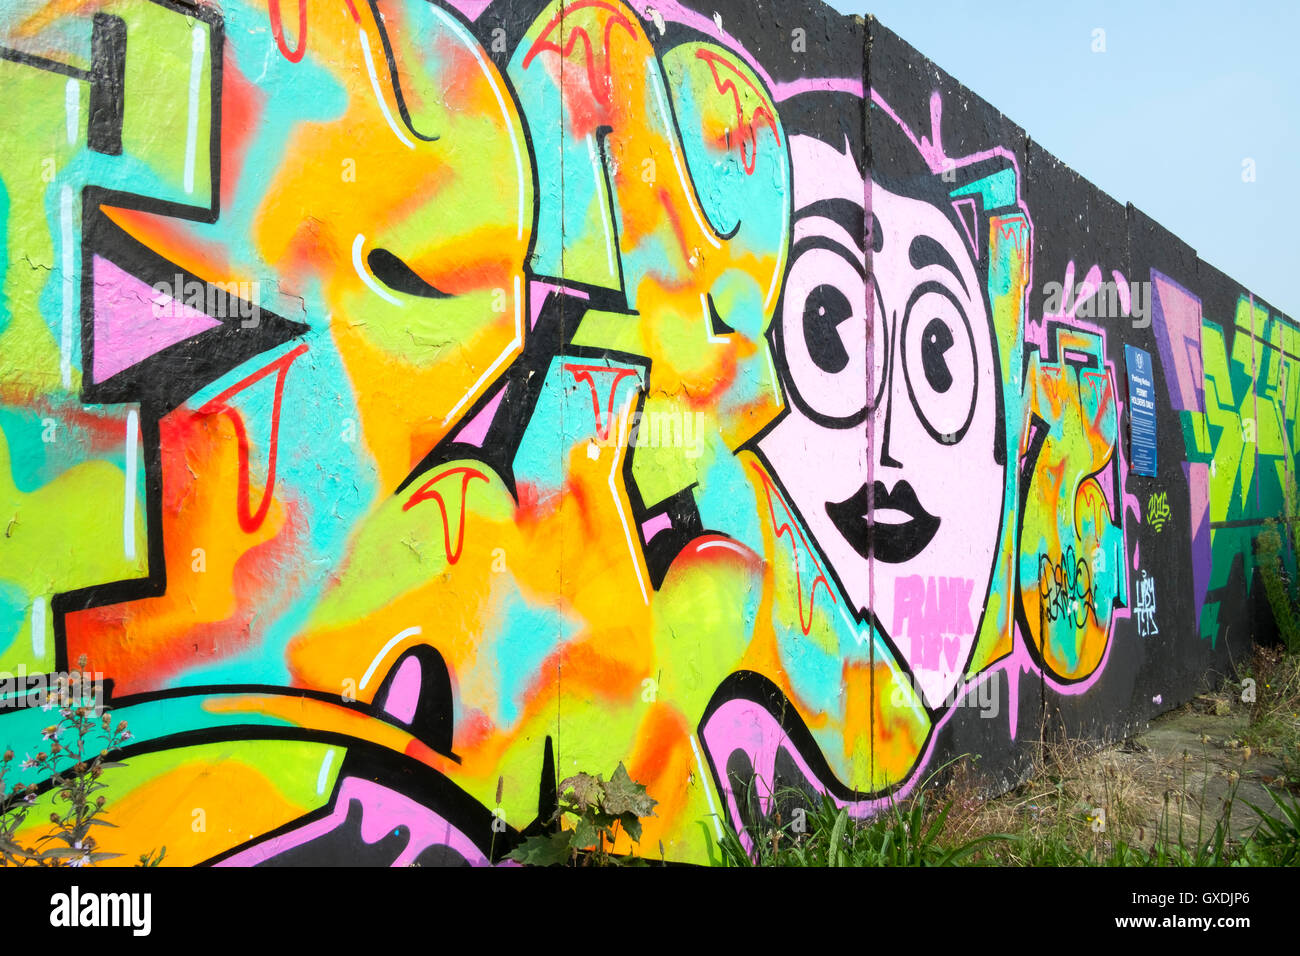 Graffiti Wall Art Stock Photos & Graffiti Wall Art Stock Images - Alamy